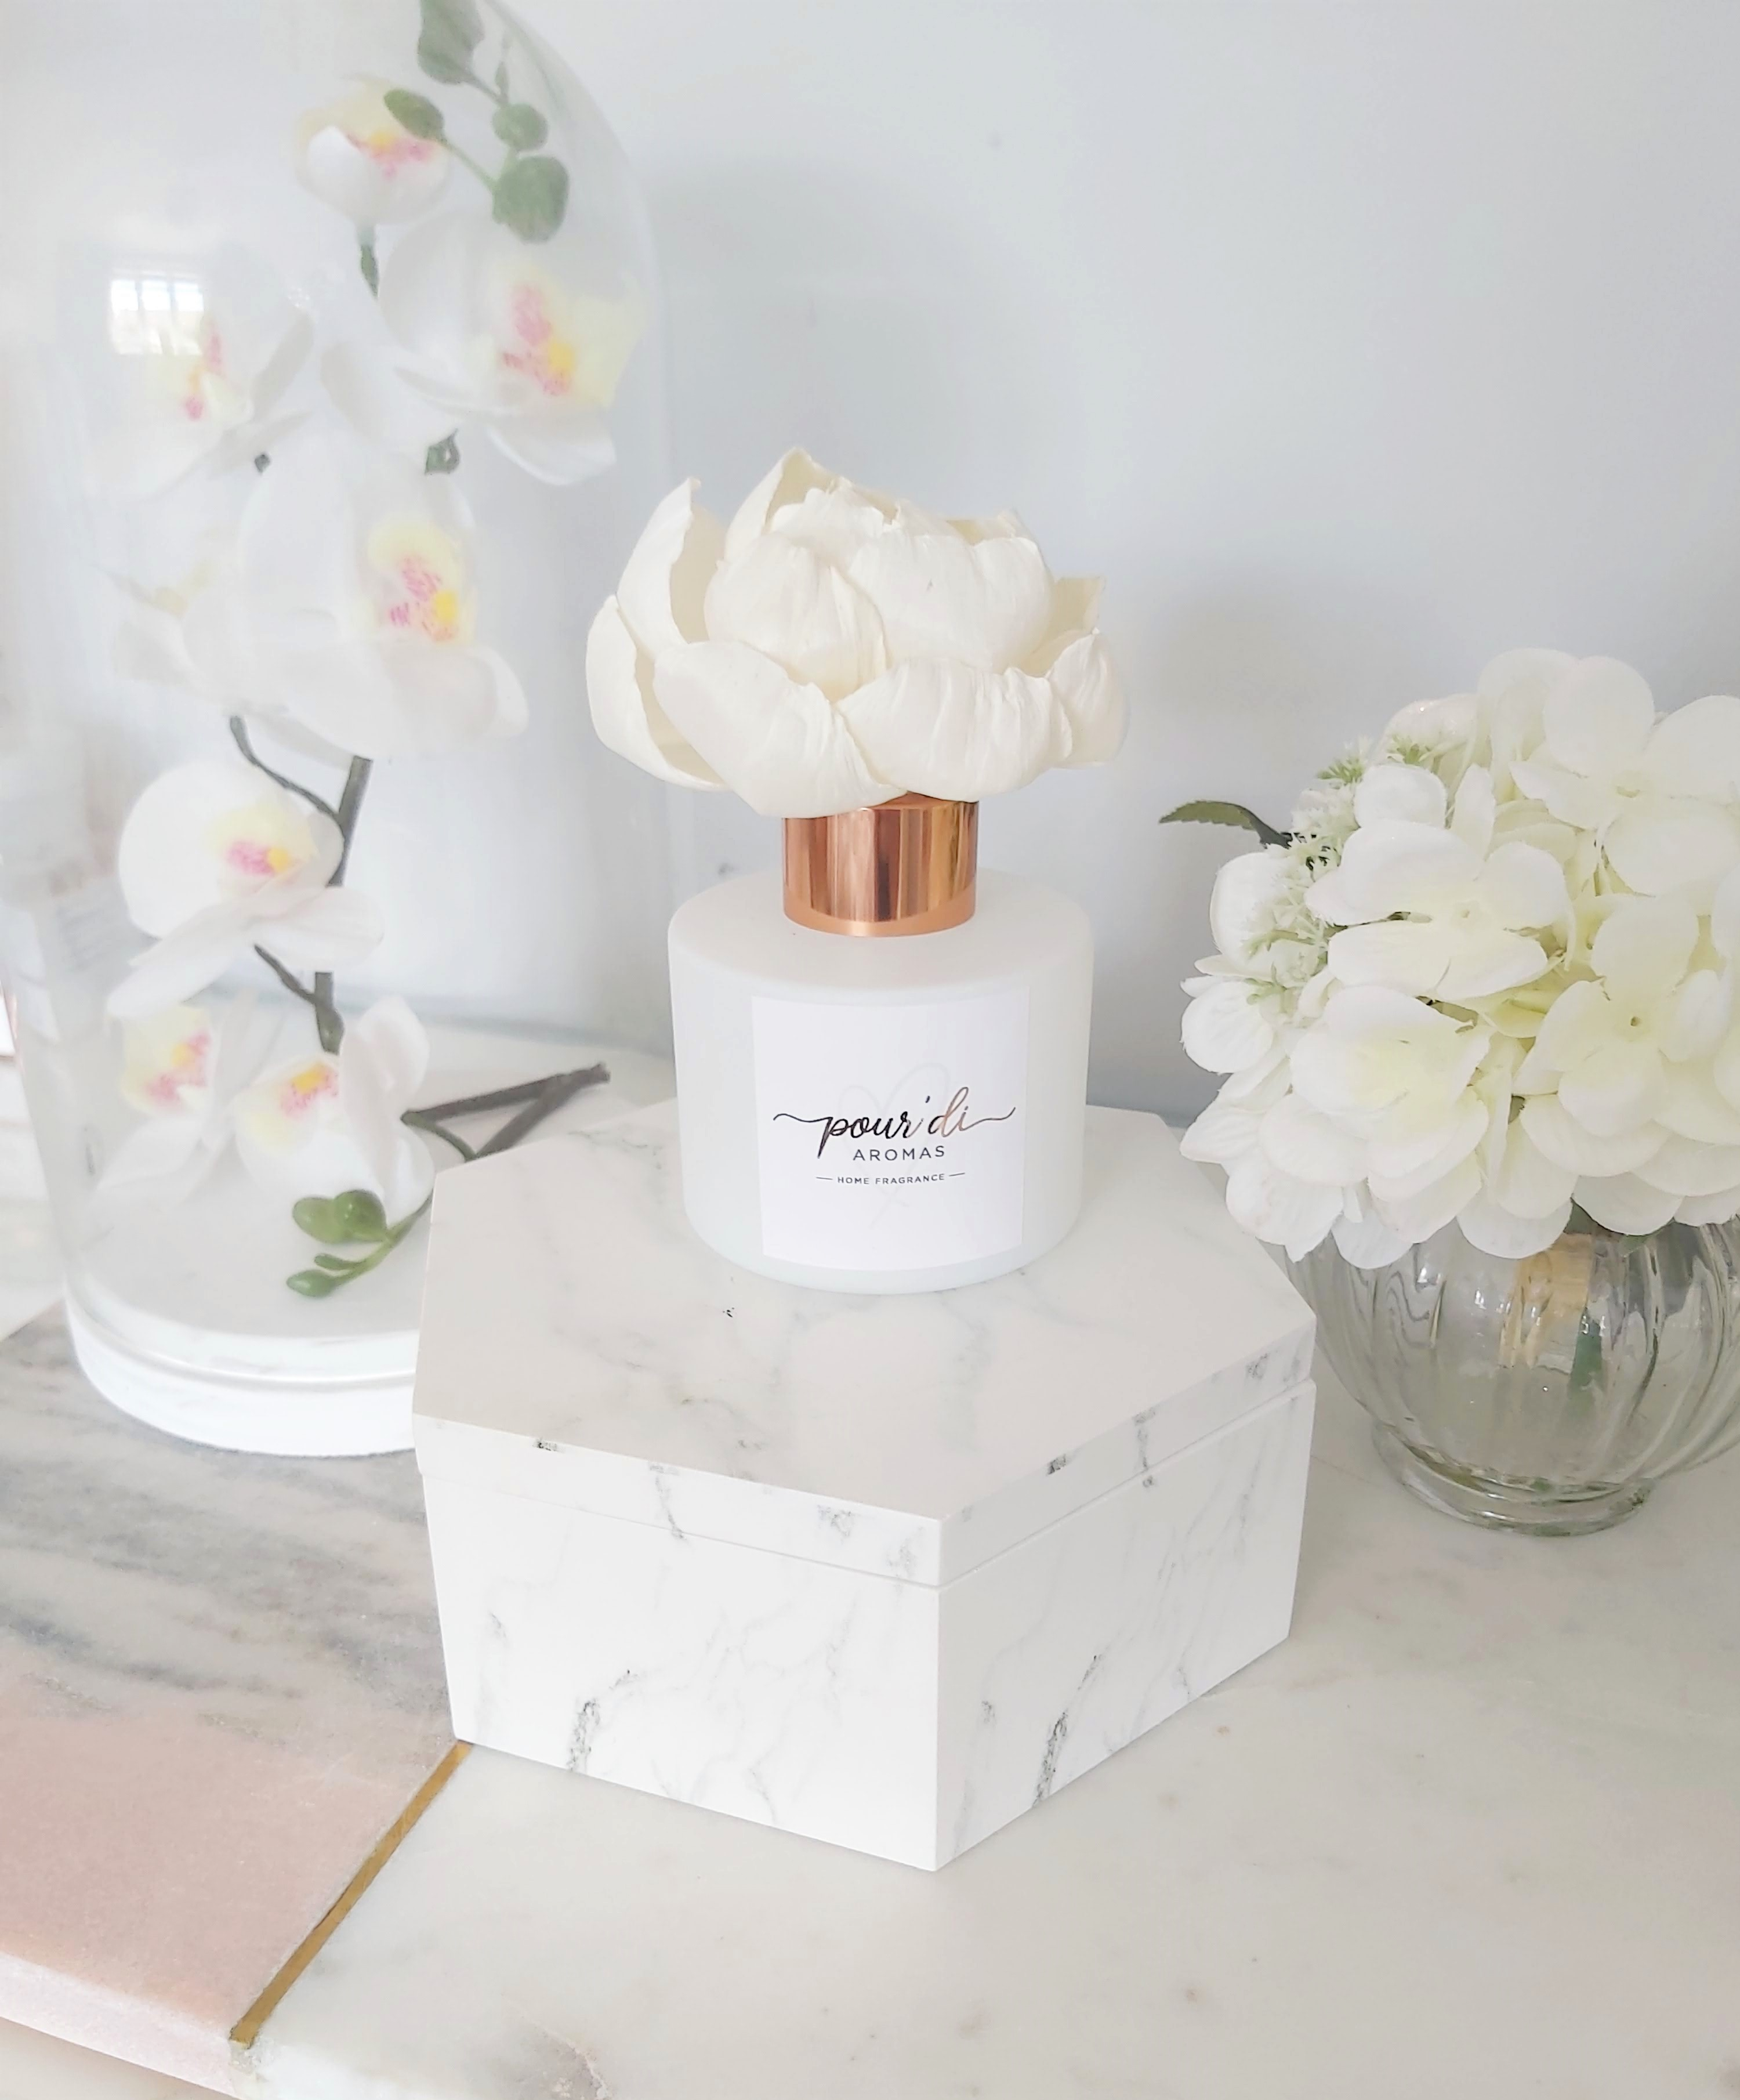 The Peony Diffuser